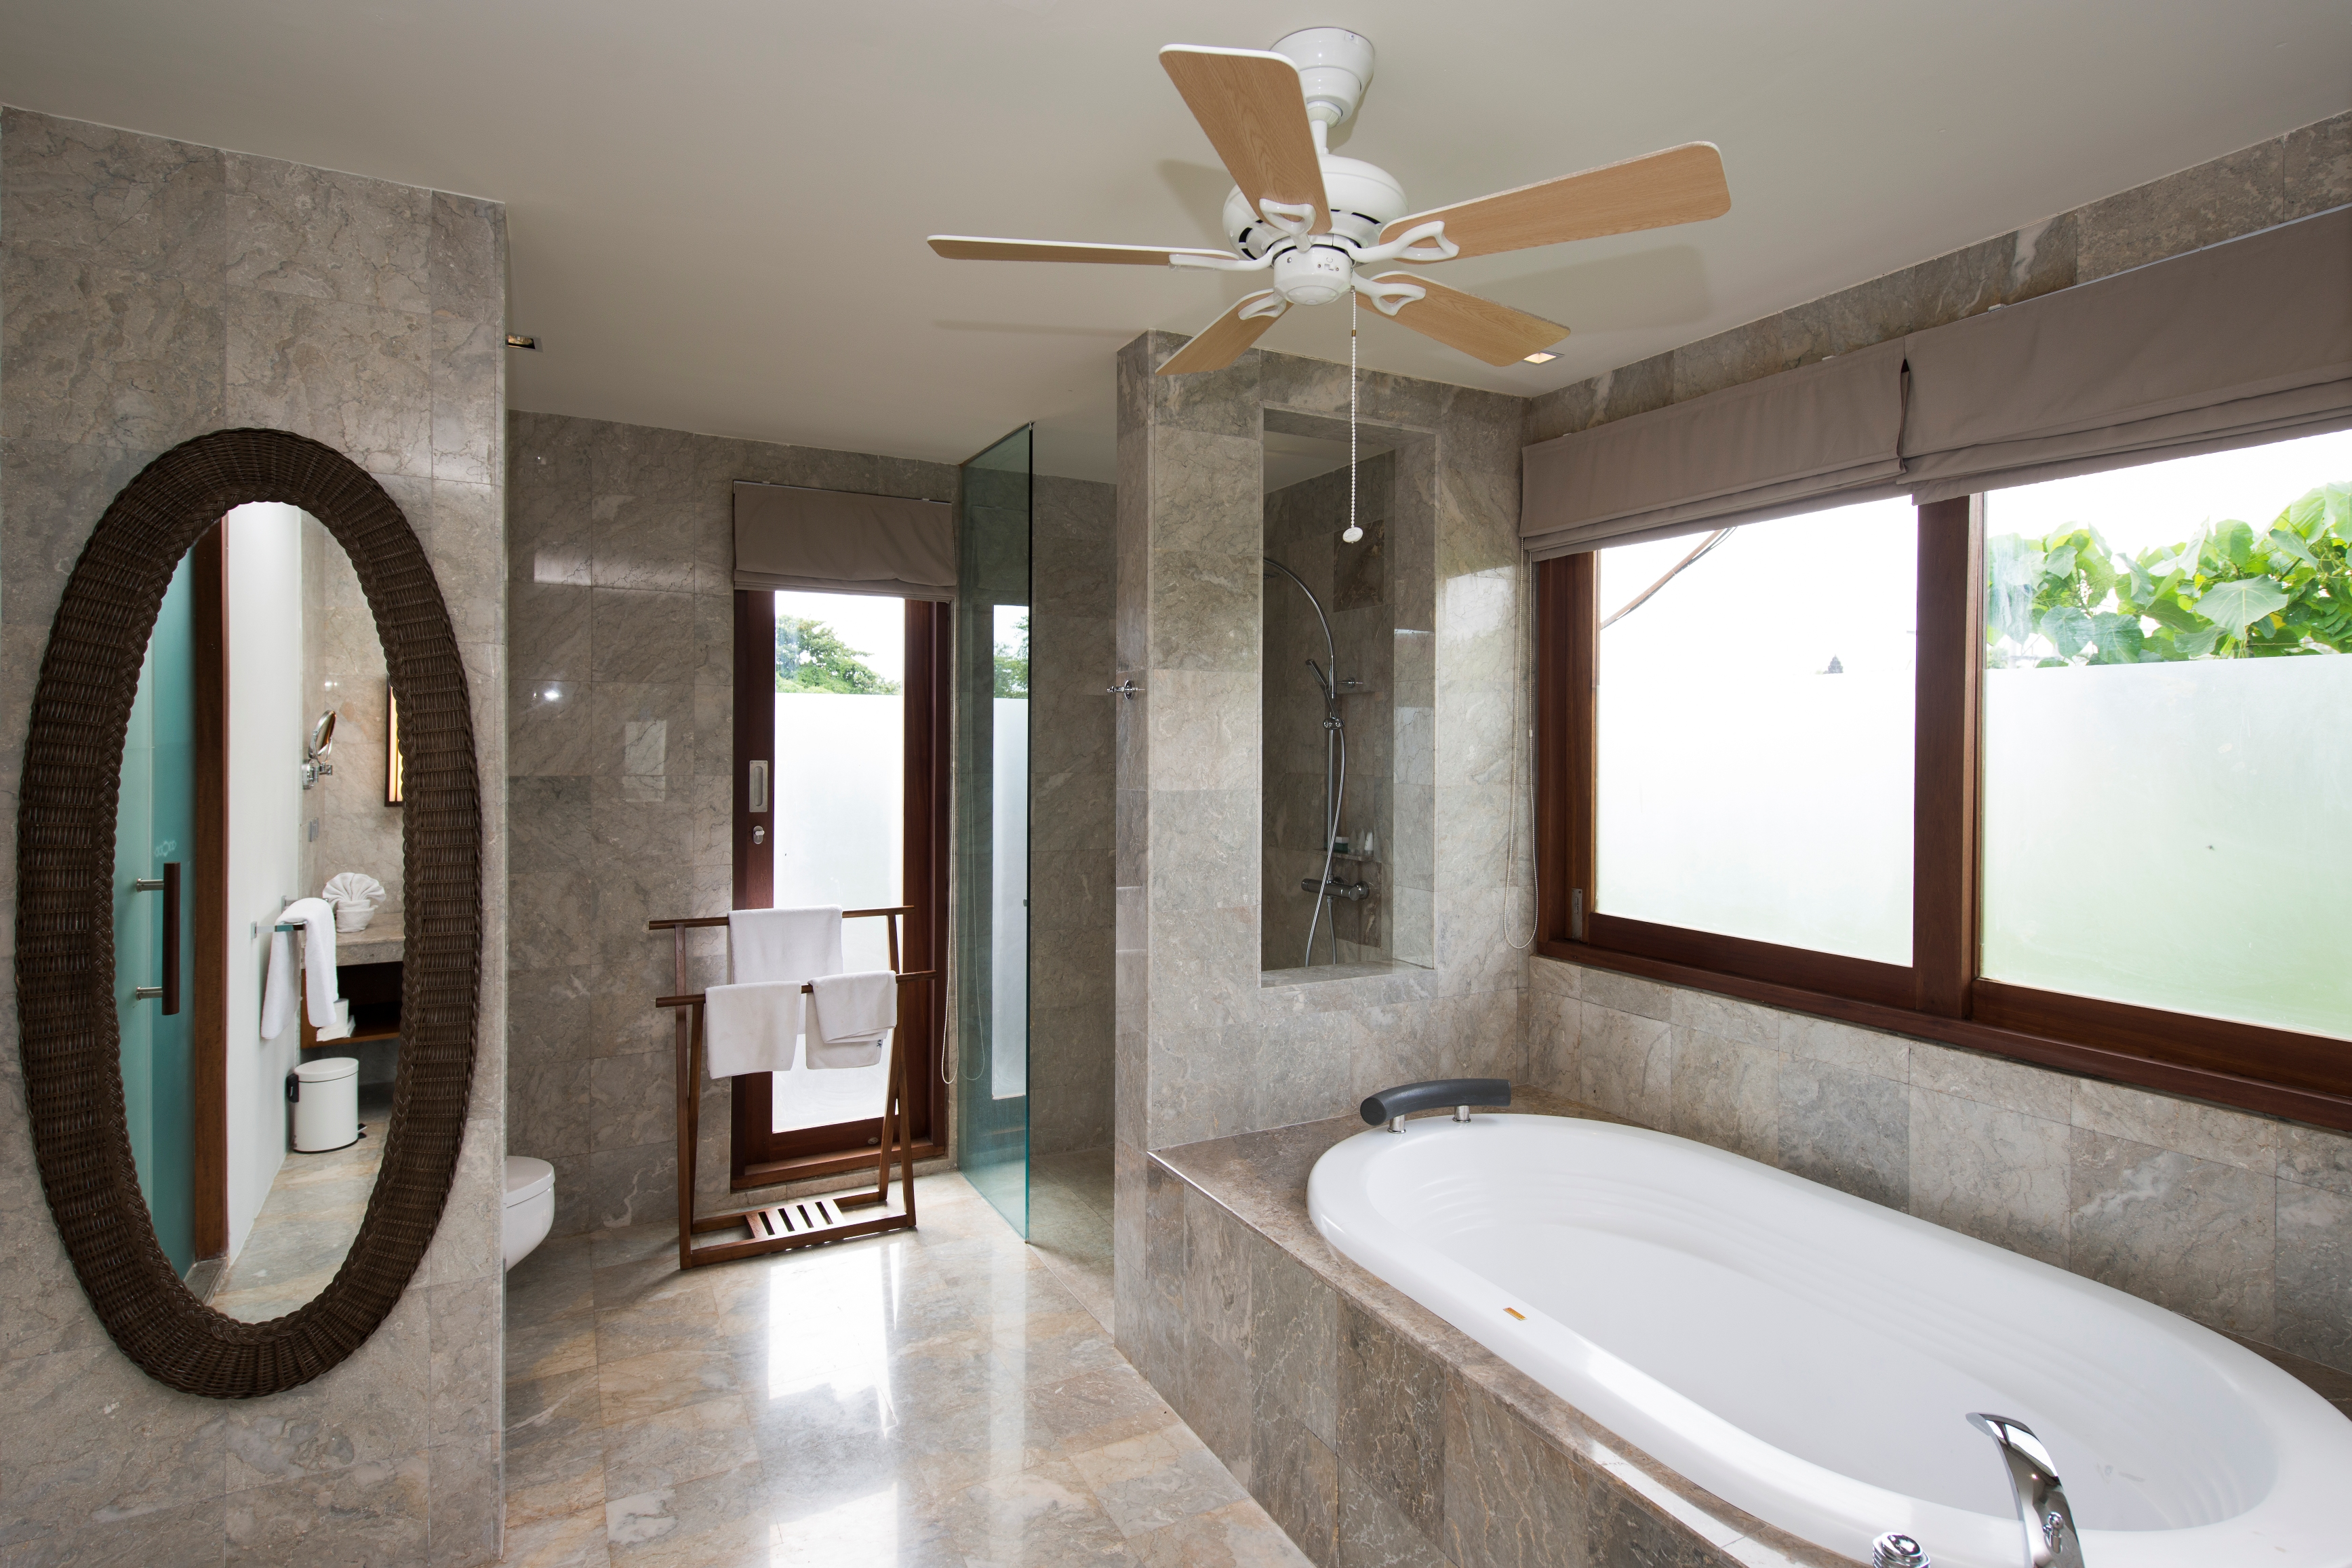 Villa M bathroom 1